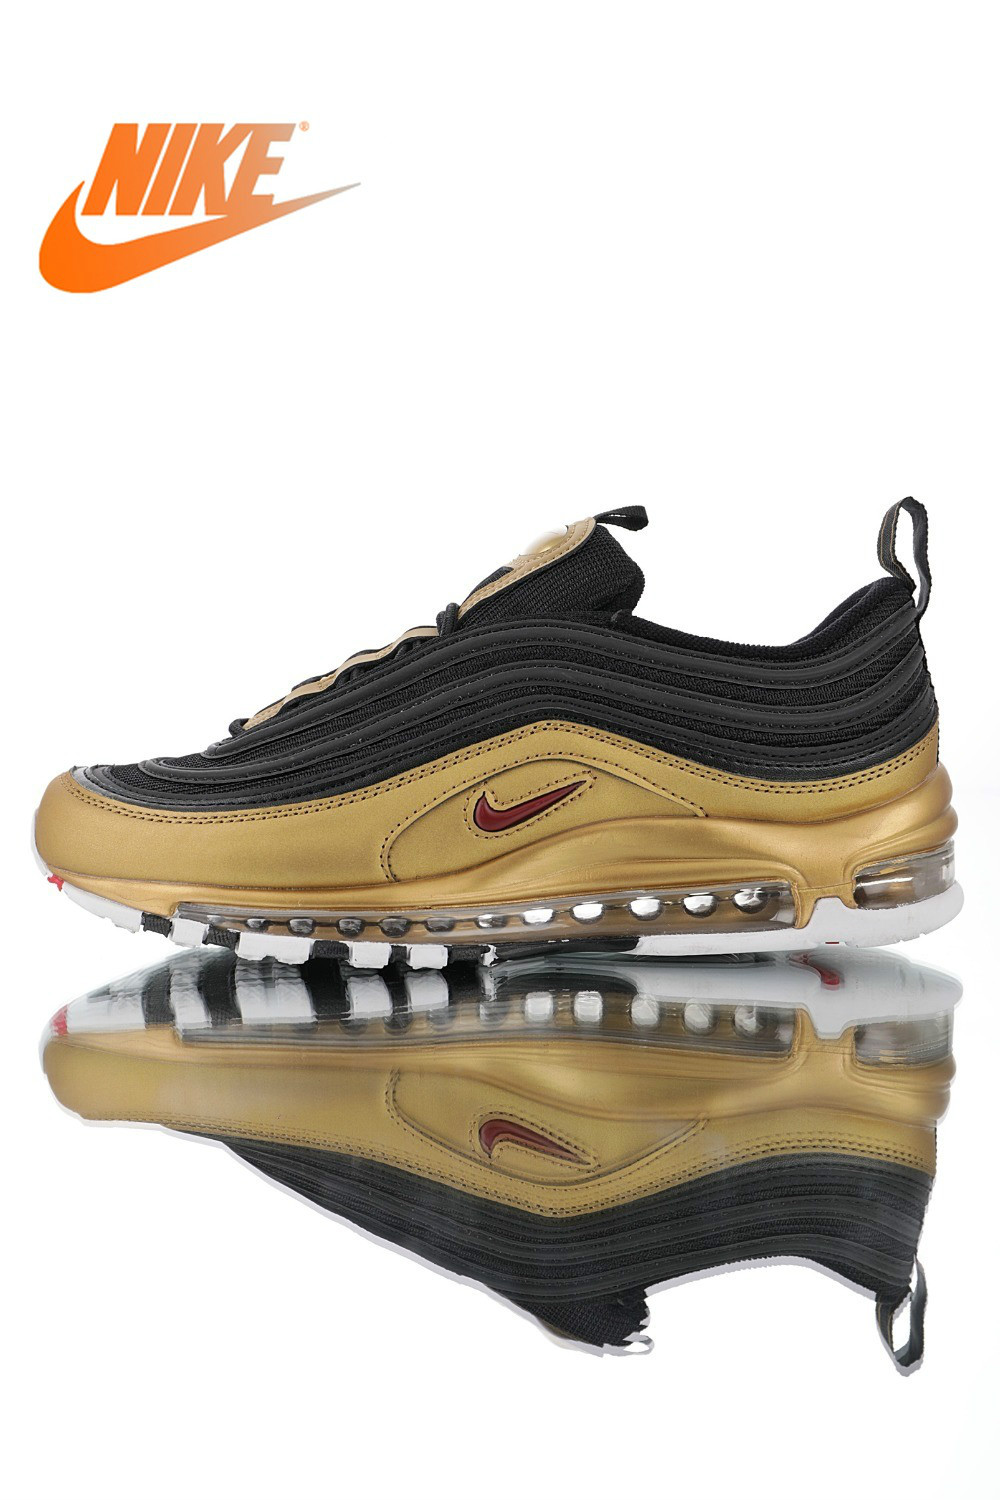 Original Authentic Nike Air Max 97 QS 2017 RELEASE Men's Running Shoes Fashion Outdoor Sports Sports Shoes AT5458-002